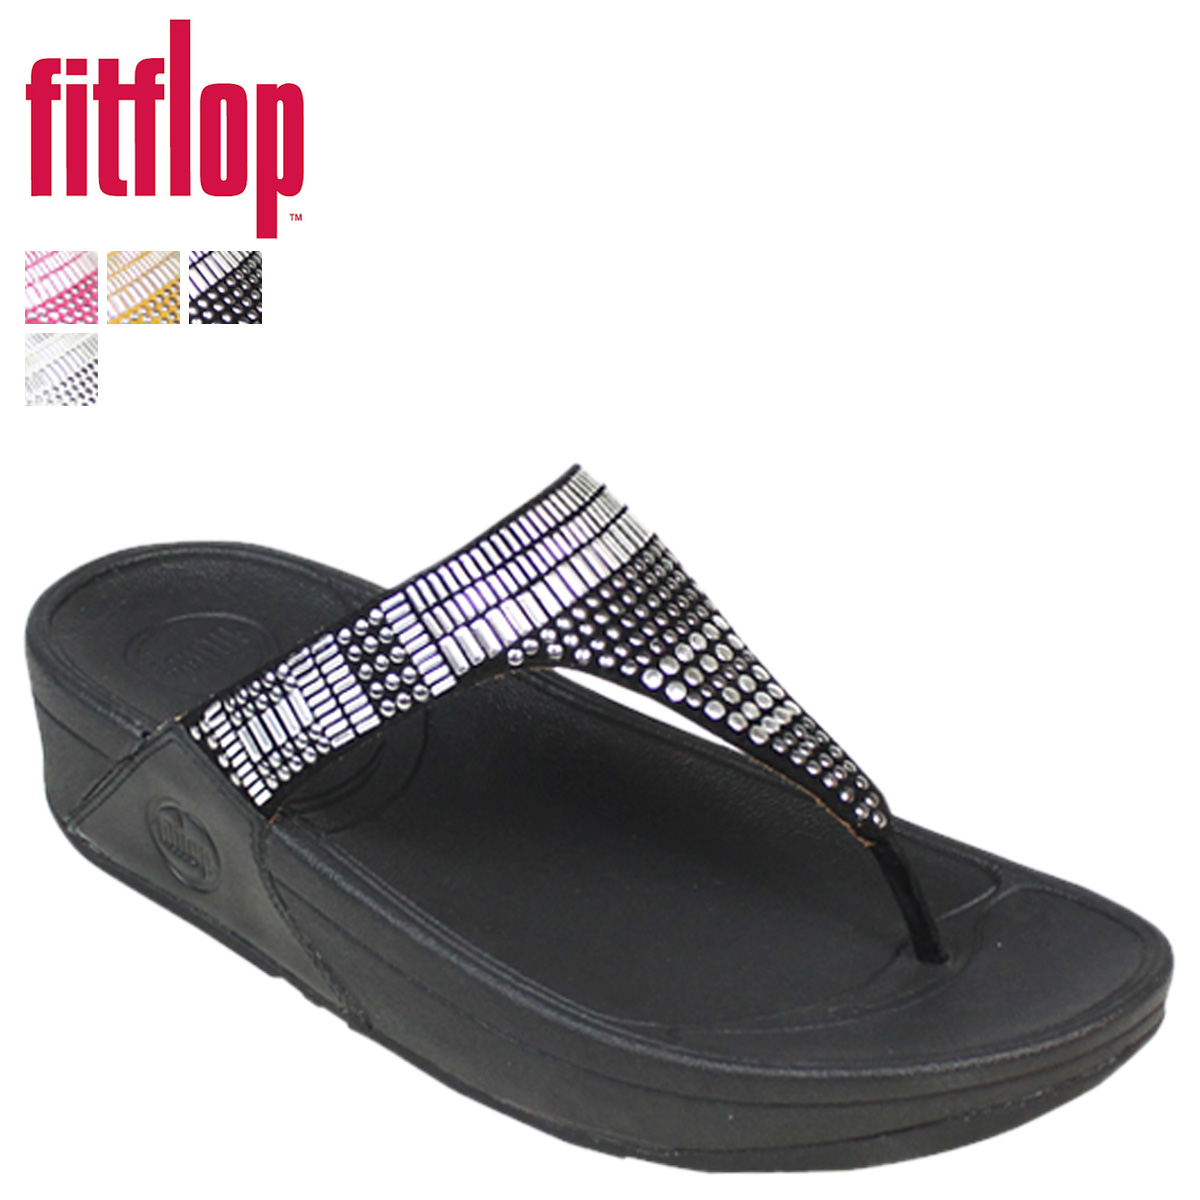 a928e661aad Whats up Sports  FitFlop fit flop Aztec chada Sandals AZTEK CHADA ...